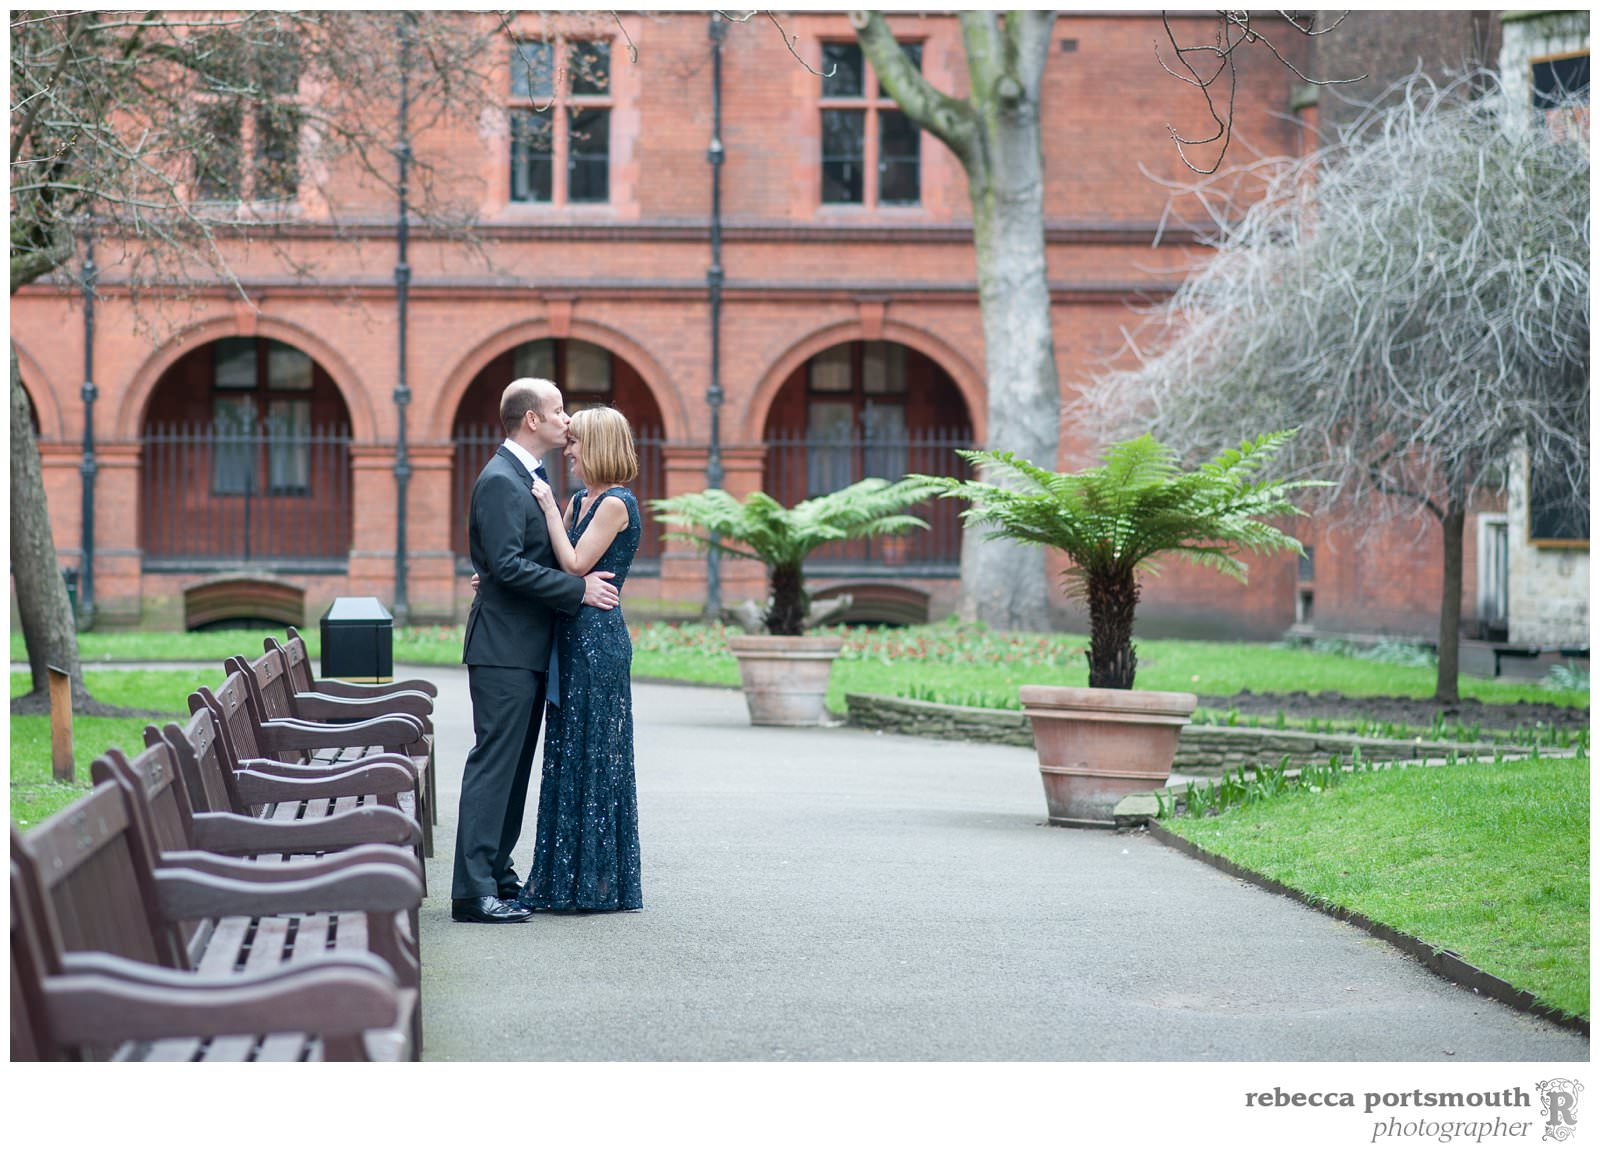 Emma and Chris have their wedding portraits taken in Mount Street Gardens before their London vow renewal in the adjacent Mayfair Library.